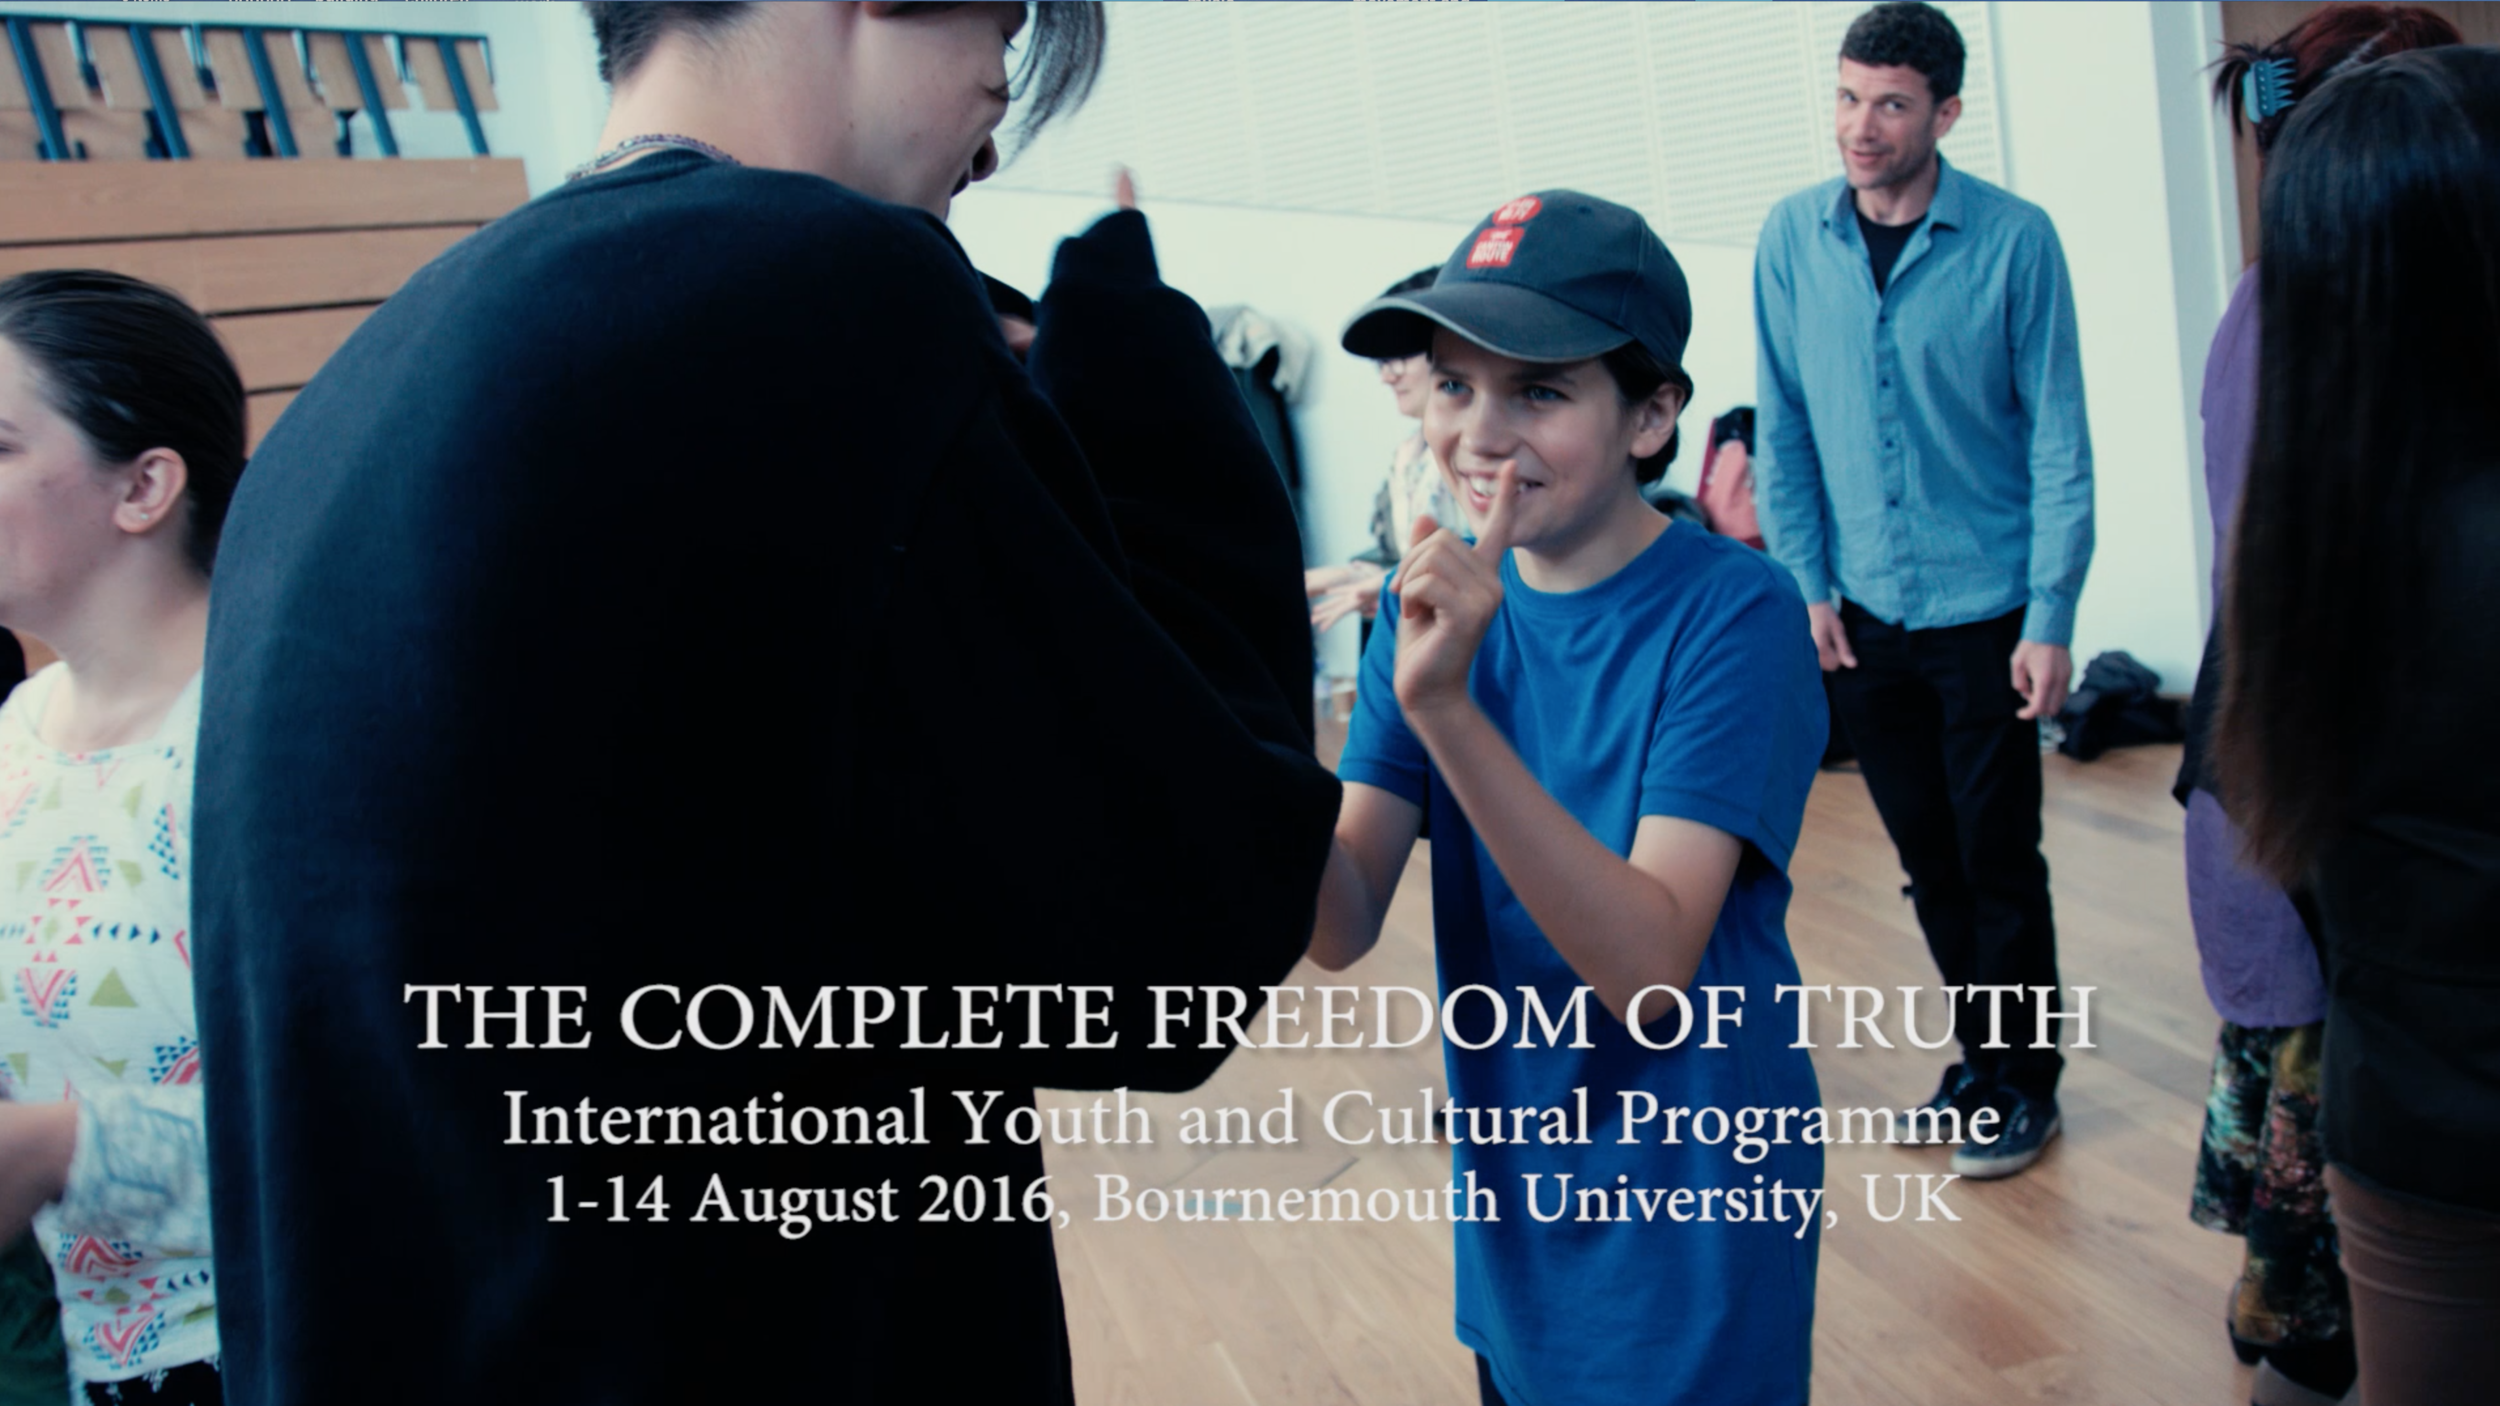 - In August 2016, TCFT brought 135 young people, artists and facilitators to be hosted by the University of Bournemouth, where a handful of highly creative professors along with Opera Circus' mentors and artists worked for 2 weeks with the young people to create exciting music, animation, photography, poetry and films amongst many cross cultural discussions. You can see this episode here.